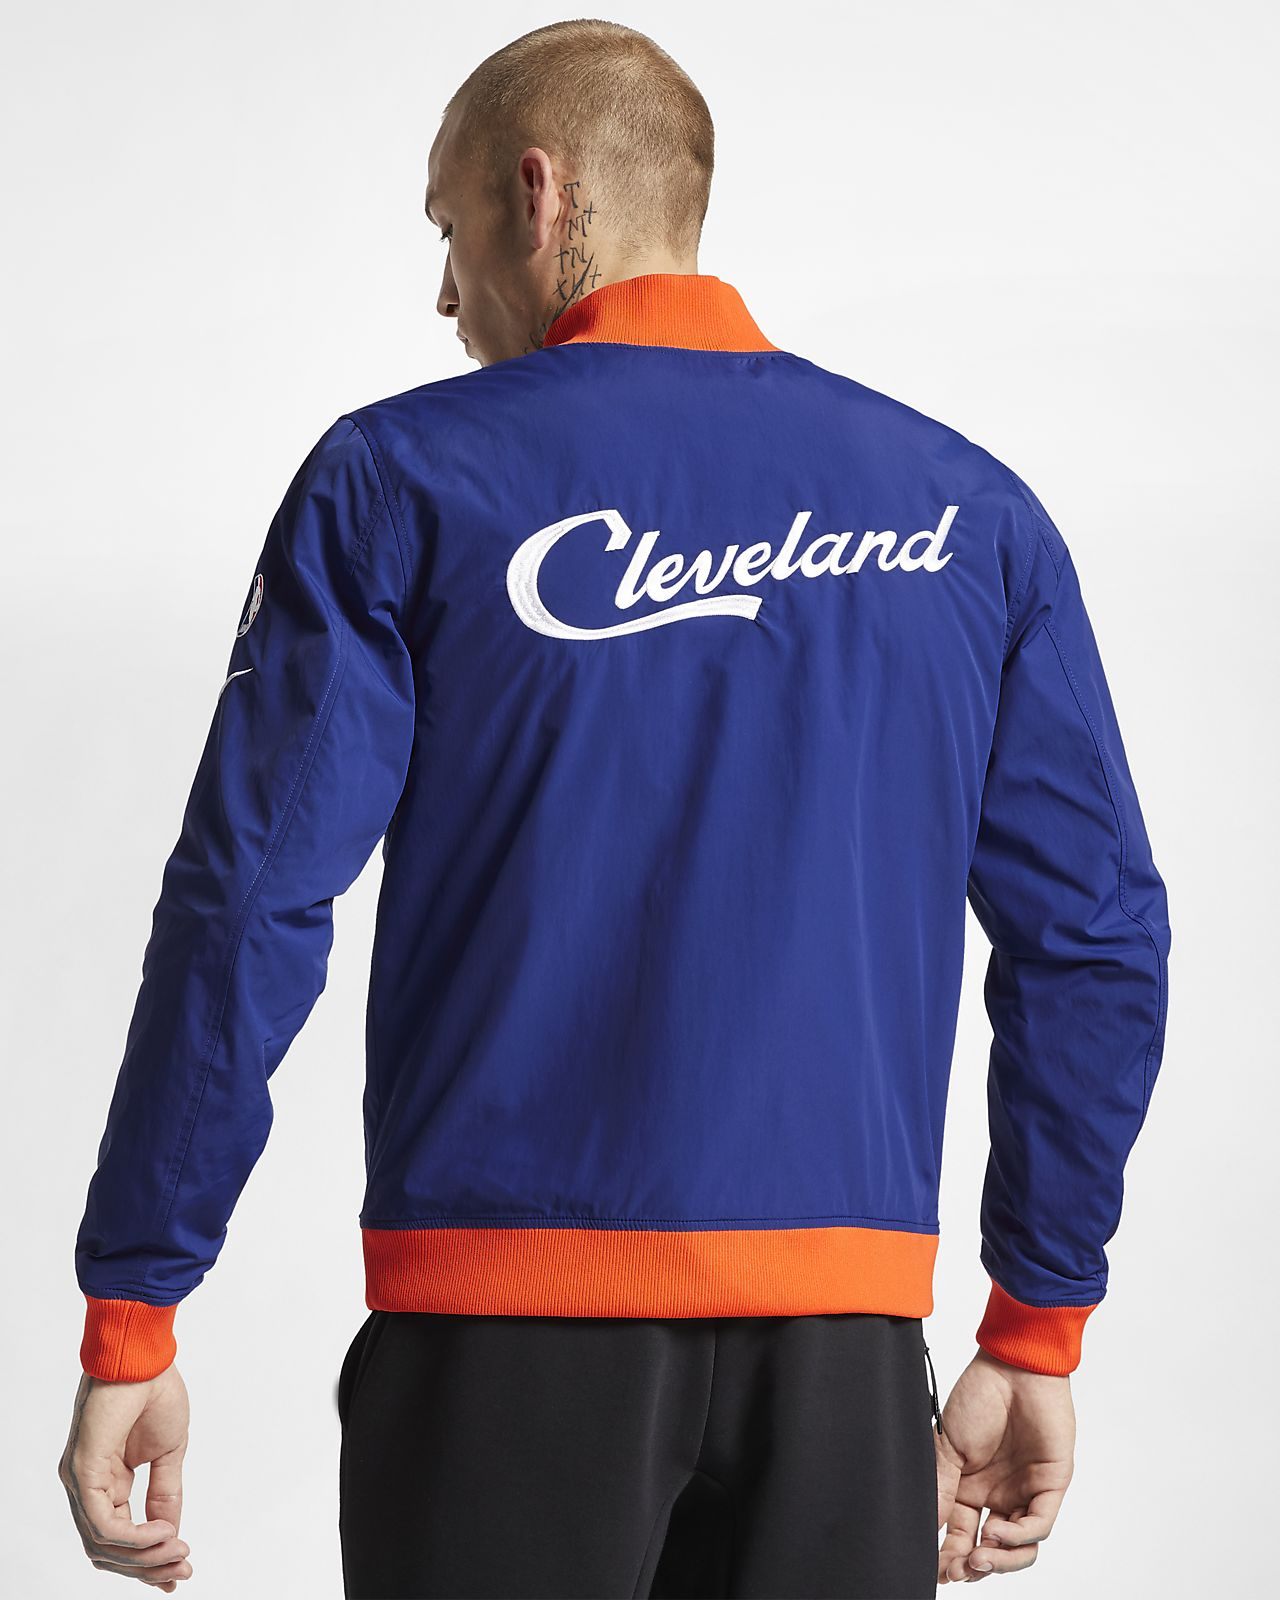 849e04890 Cleveland Cavaliers Nike Courtside Men s NBA Jacket. Nike.com